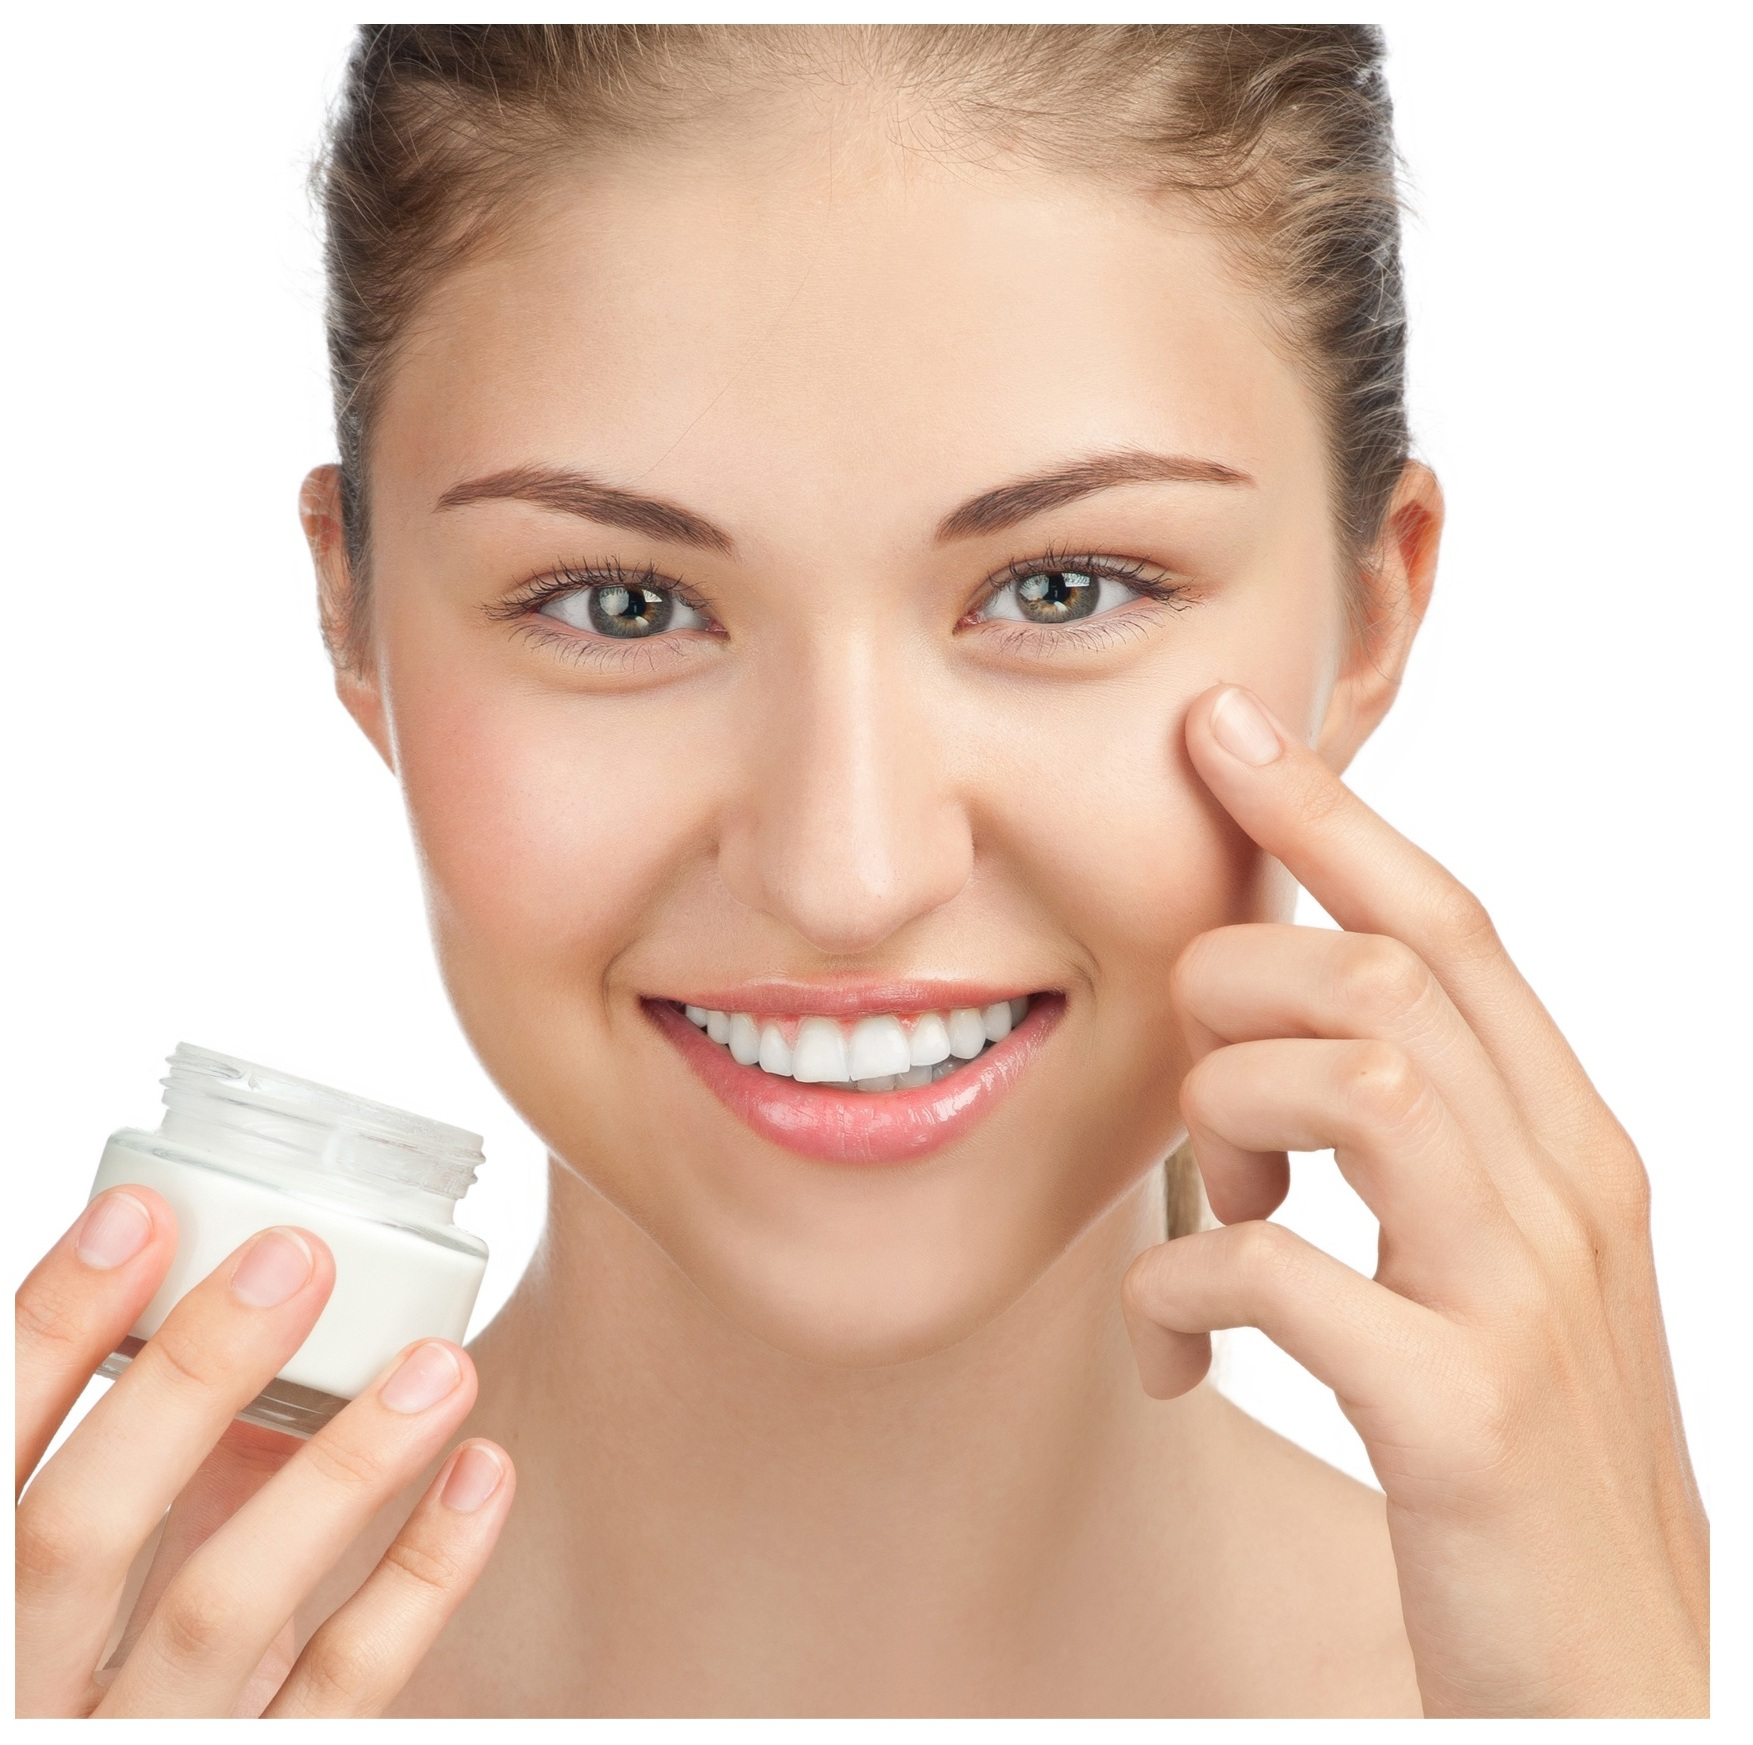 4 Skin Care Products That Make You Look Younger